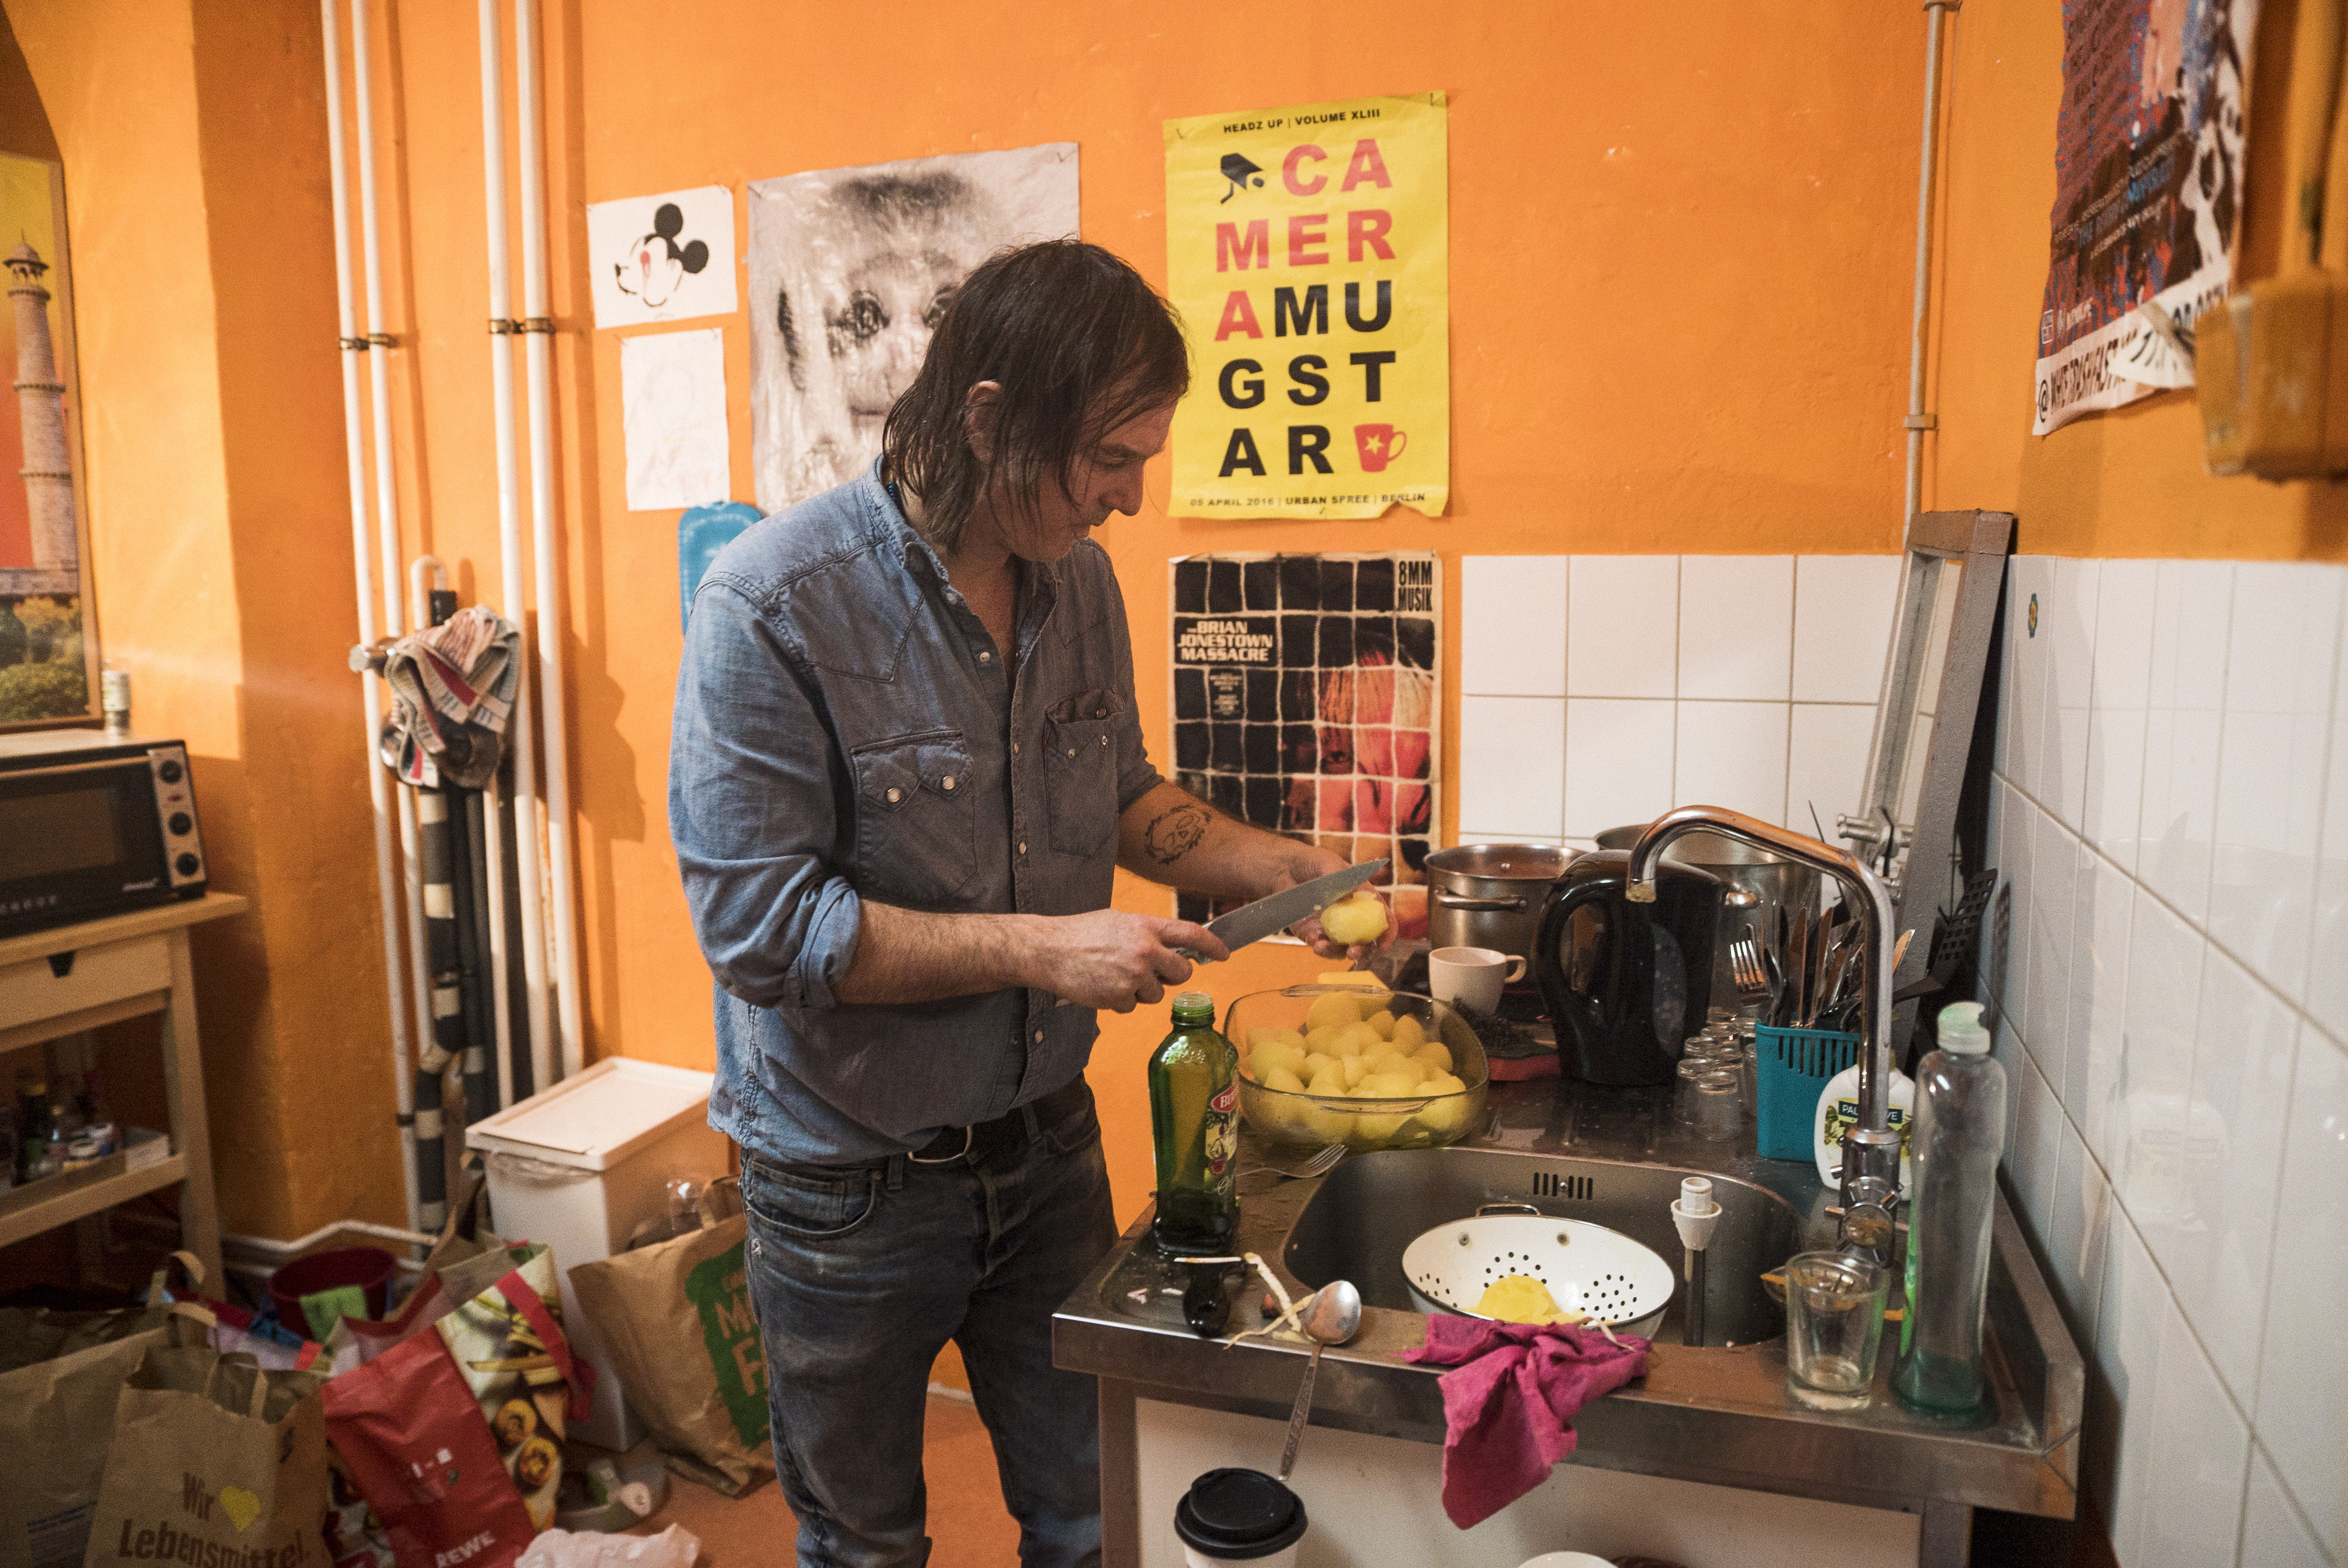 Anton Newcombe prepares the feast.